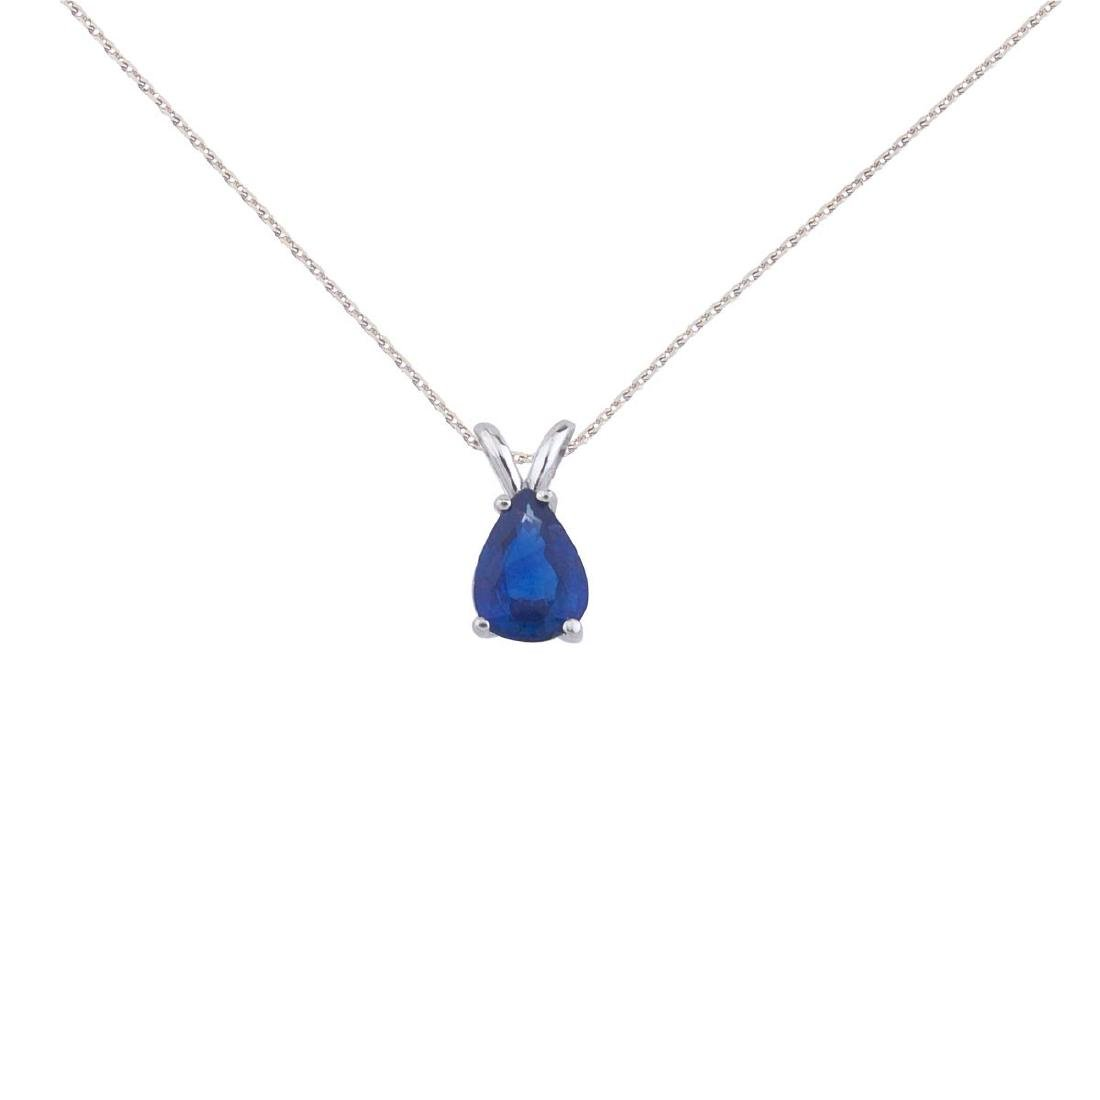 Certified 14k White Gold Pear Shaped Sapphire Pendant a